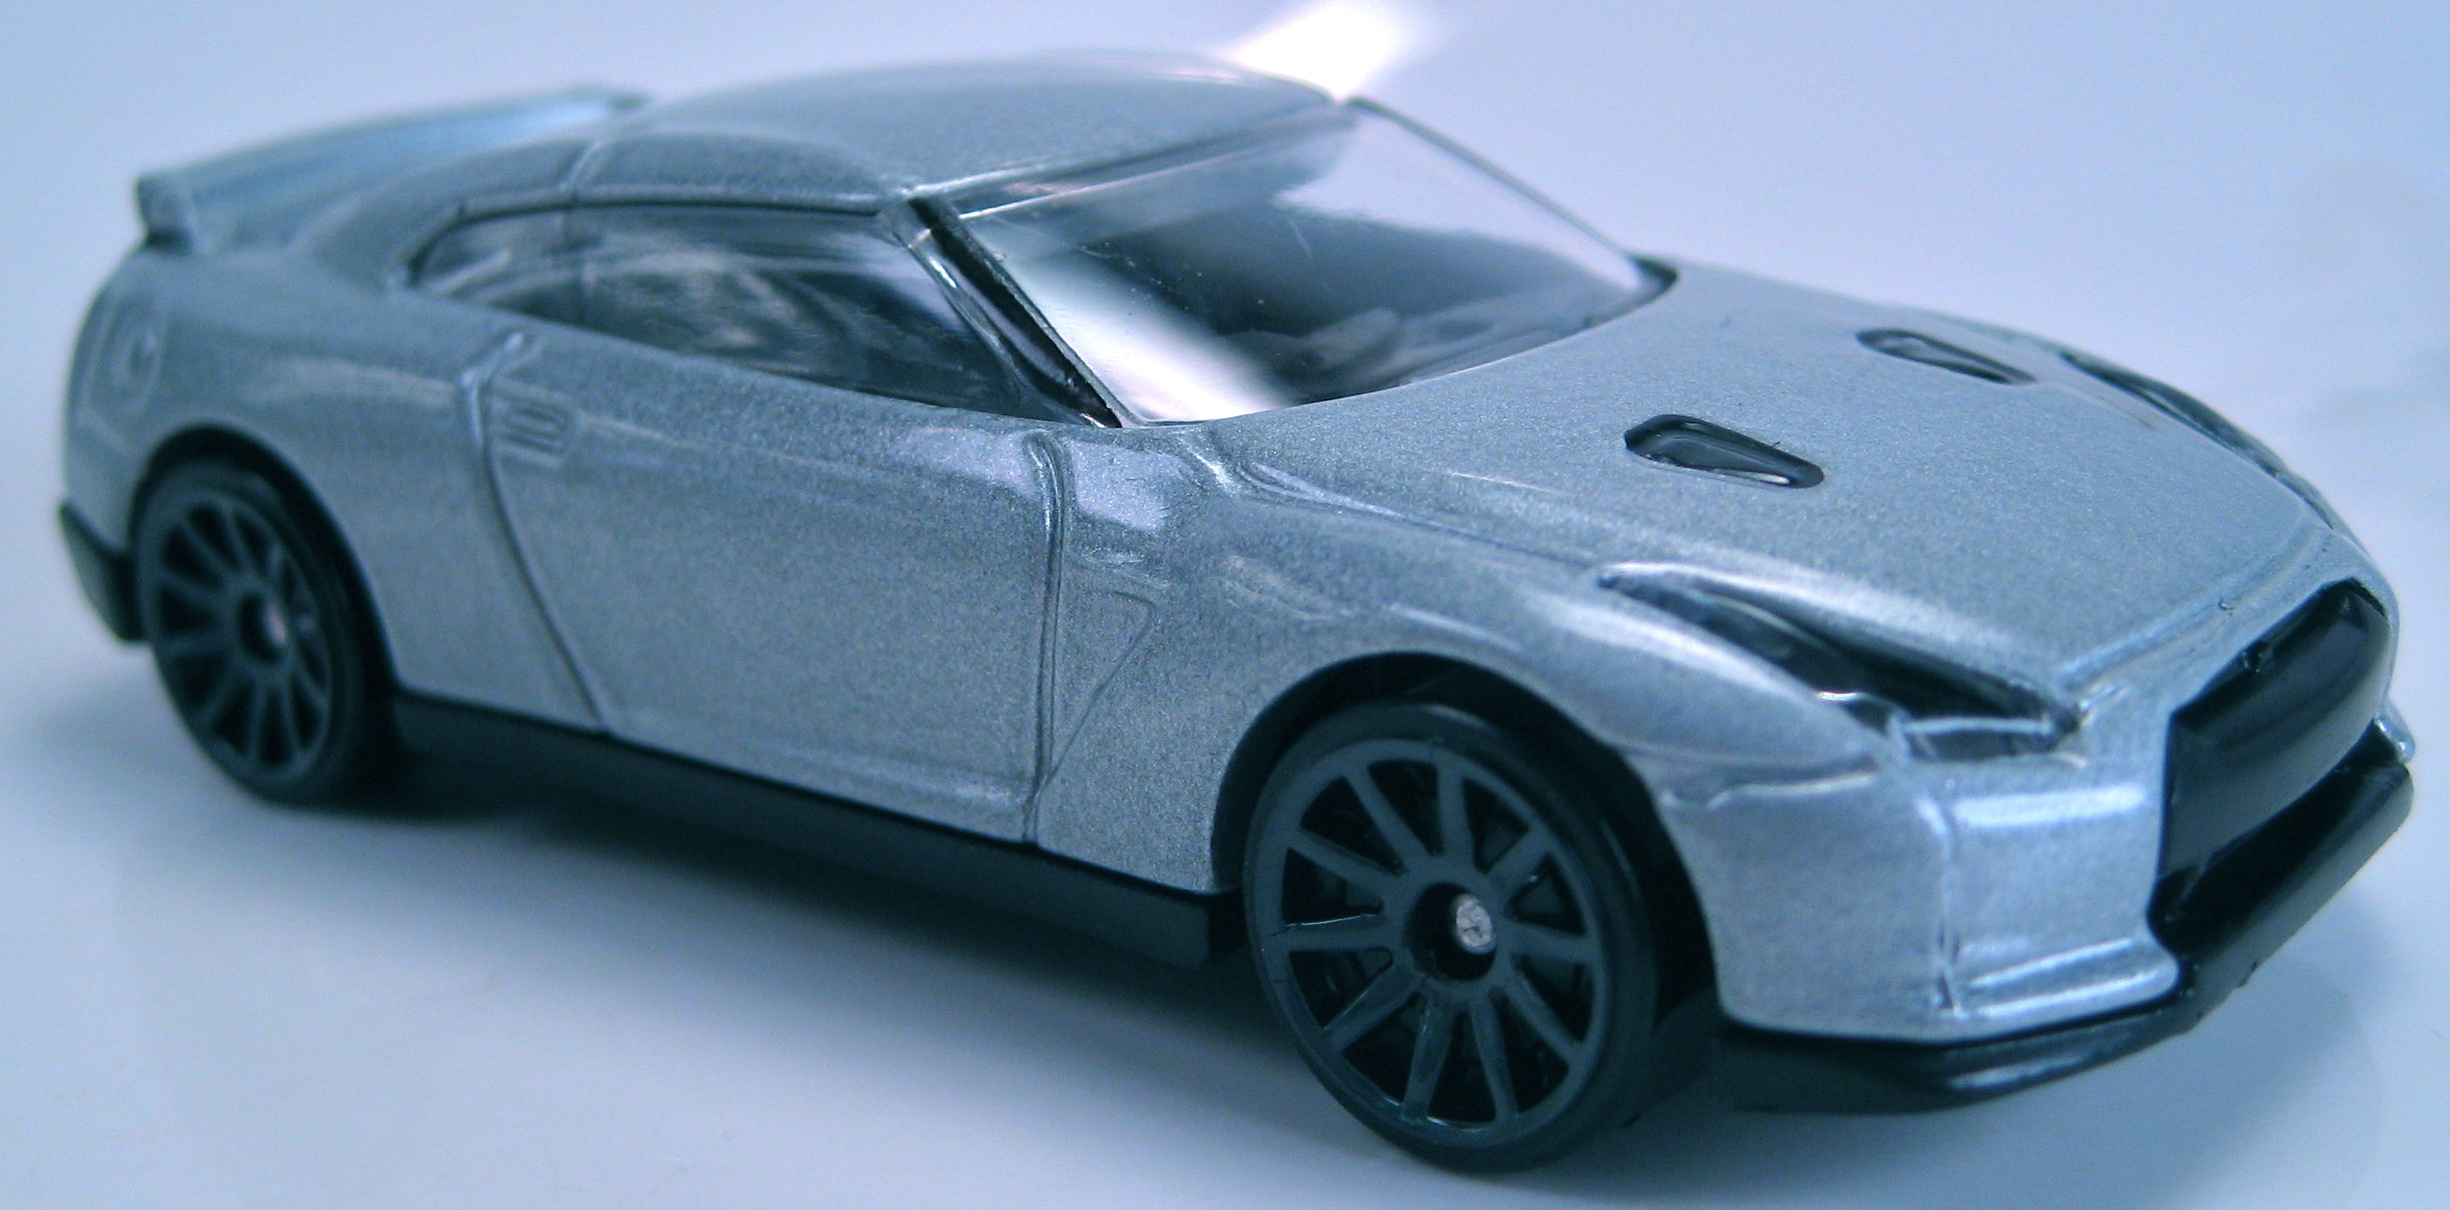 2009 nissan gt r hot wheels wiki fandom powered by wikia rh hotwheels wikia com